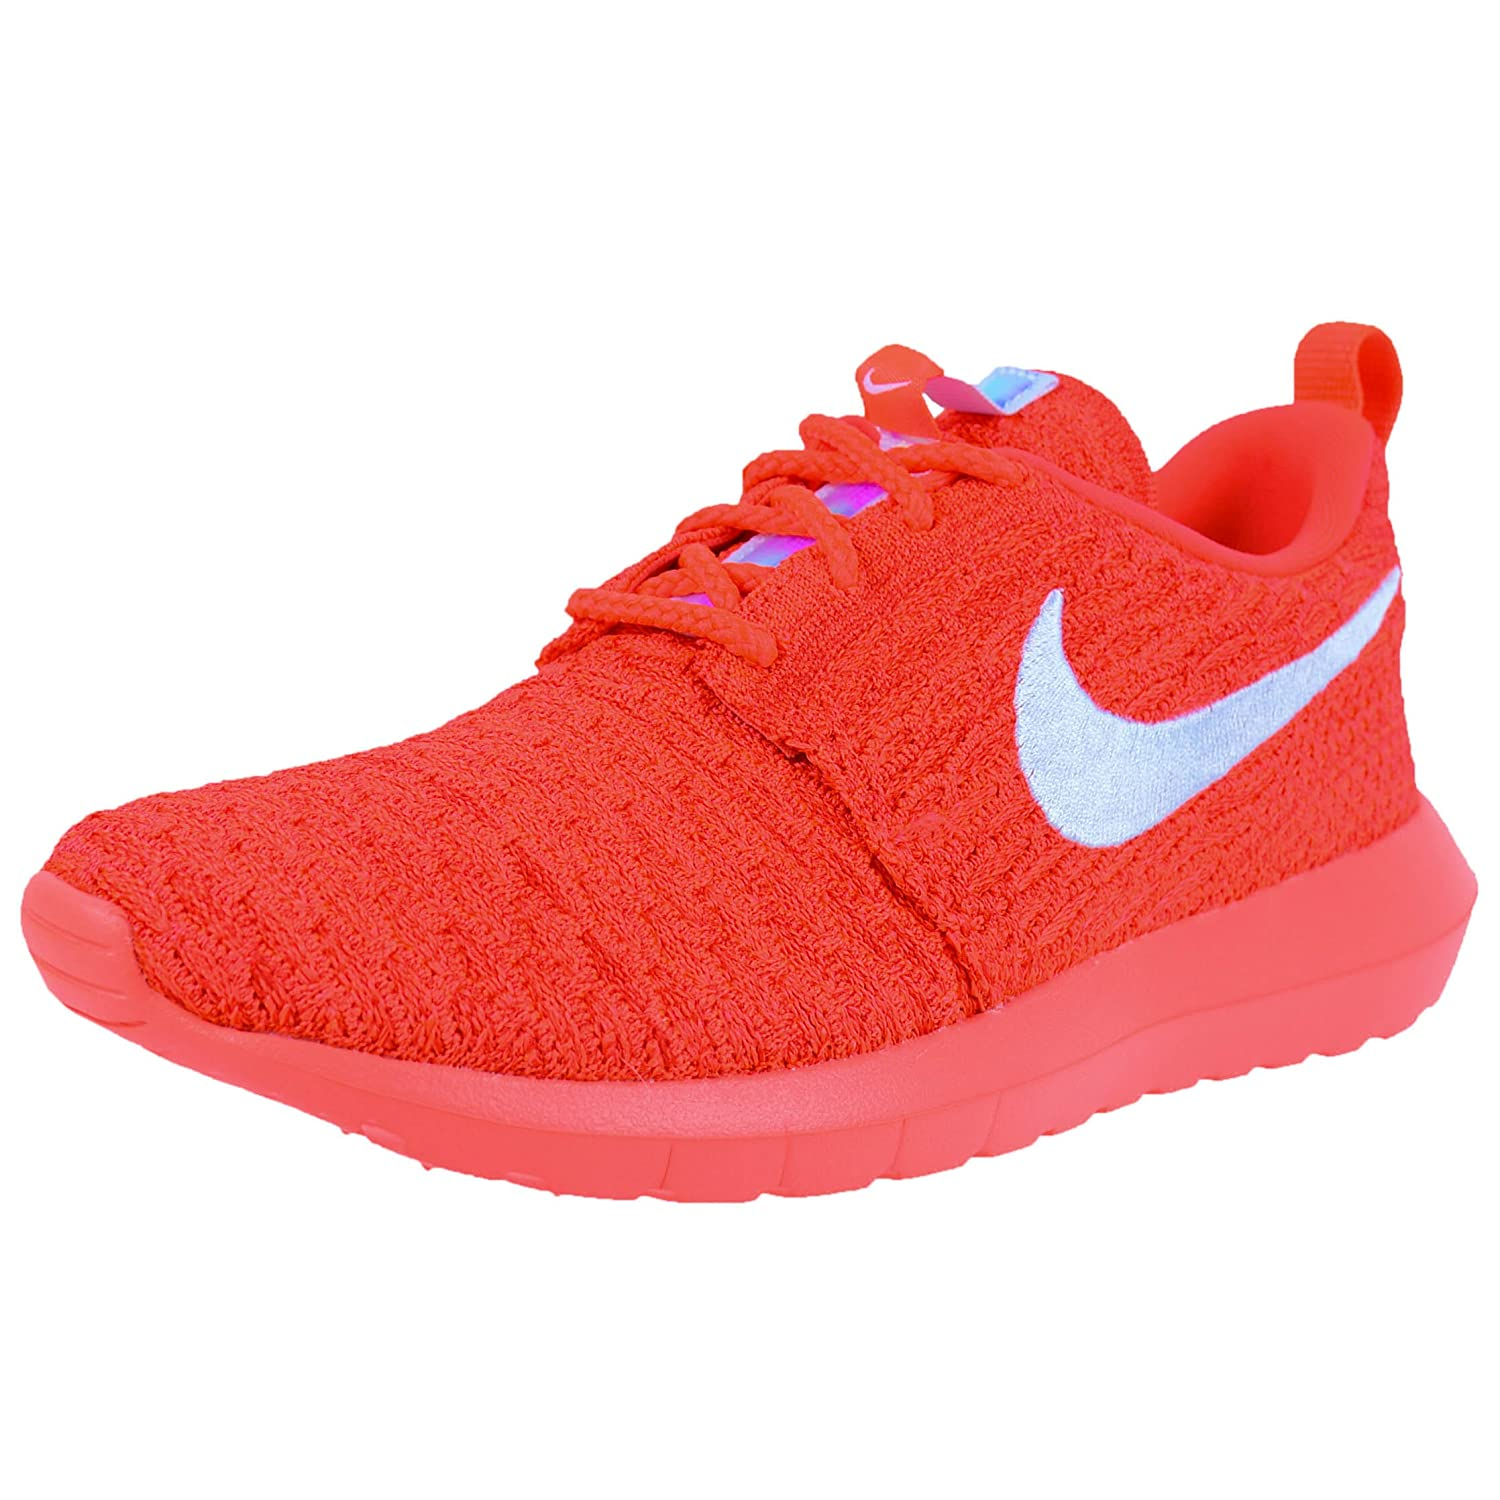 NIKE Womens Roshe One Flyknit Flyknit Colorblock Running Shoes B01JSN9E1A 10 M US|Bright Crimson/White-university Red